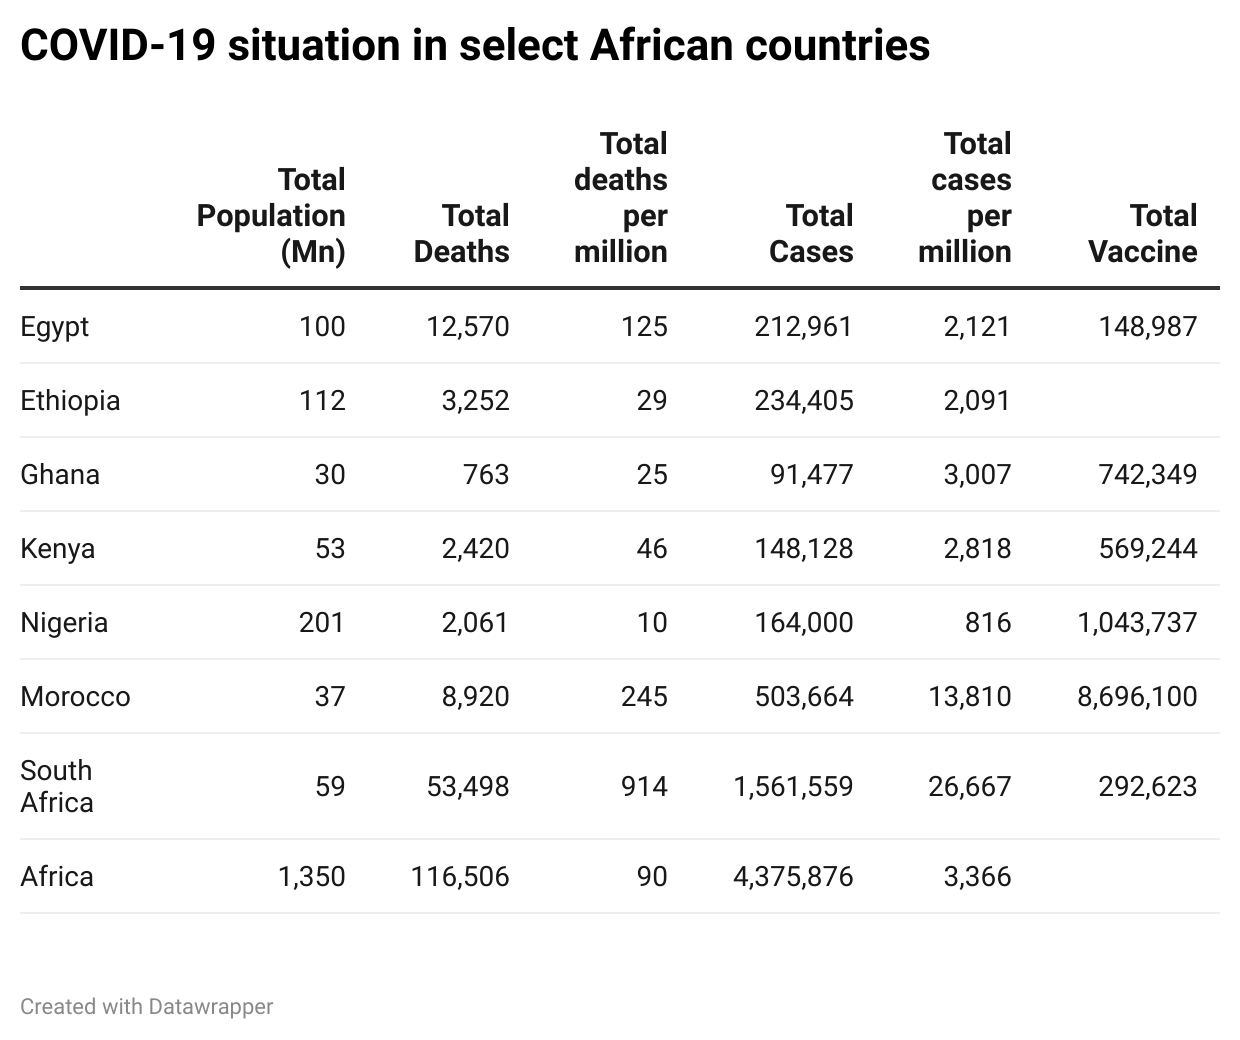 COVID-19 situation in select African countries